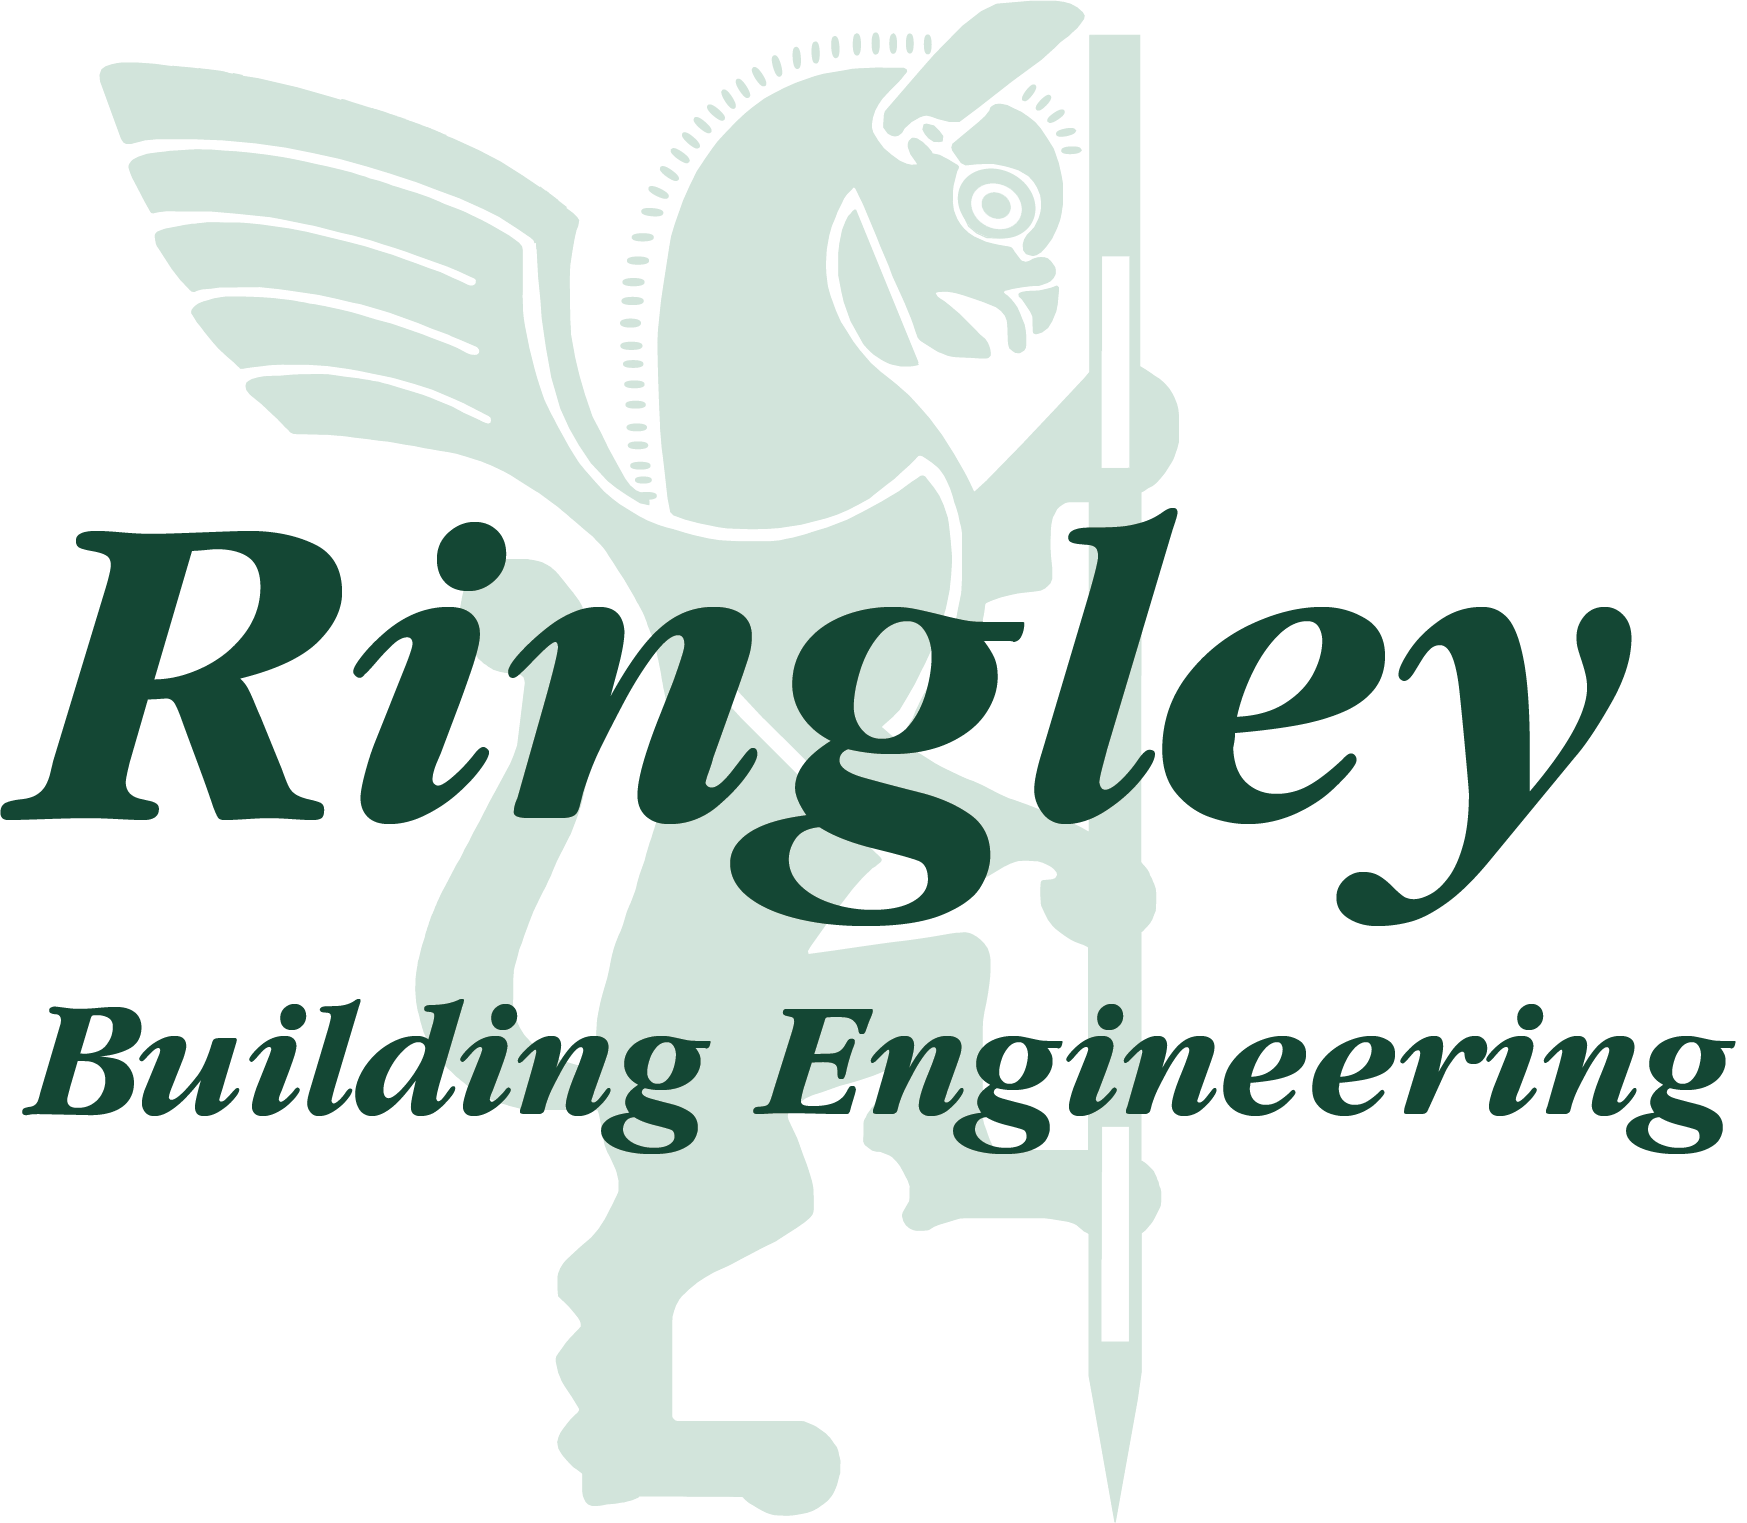 Ringley engineering